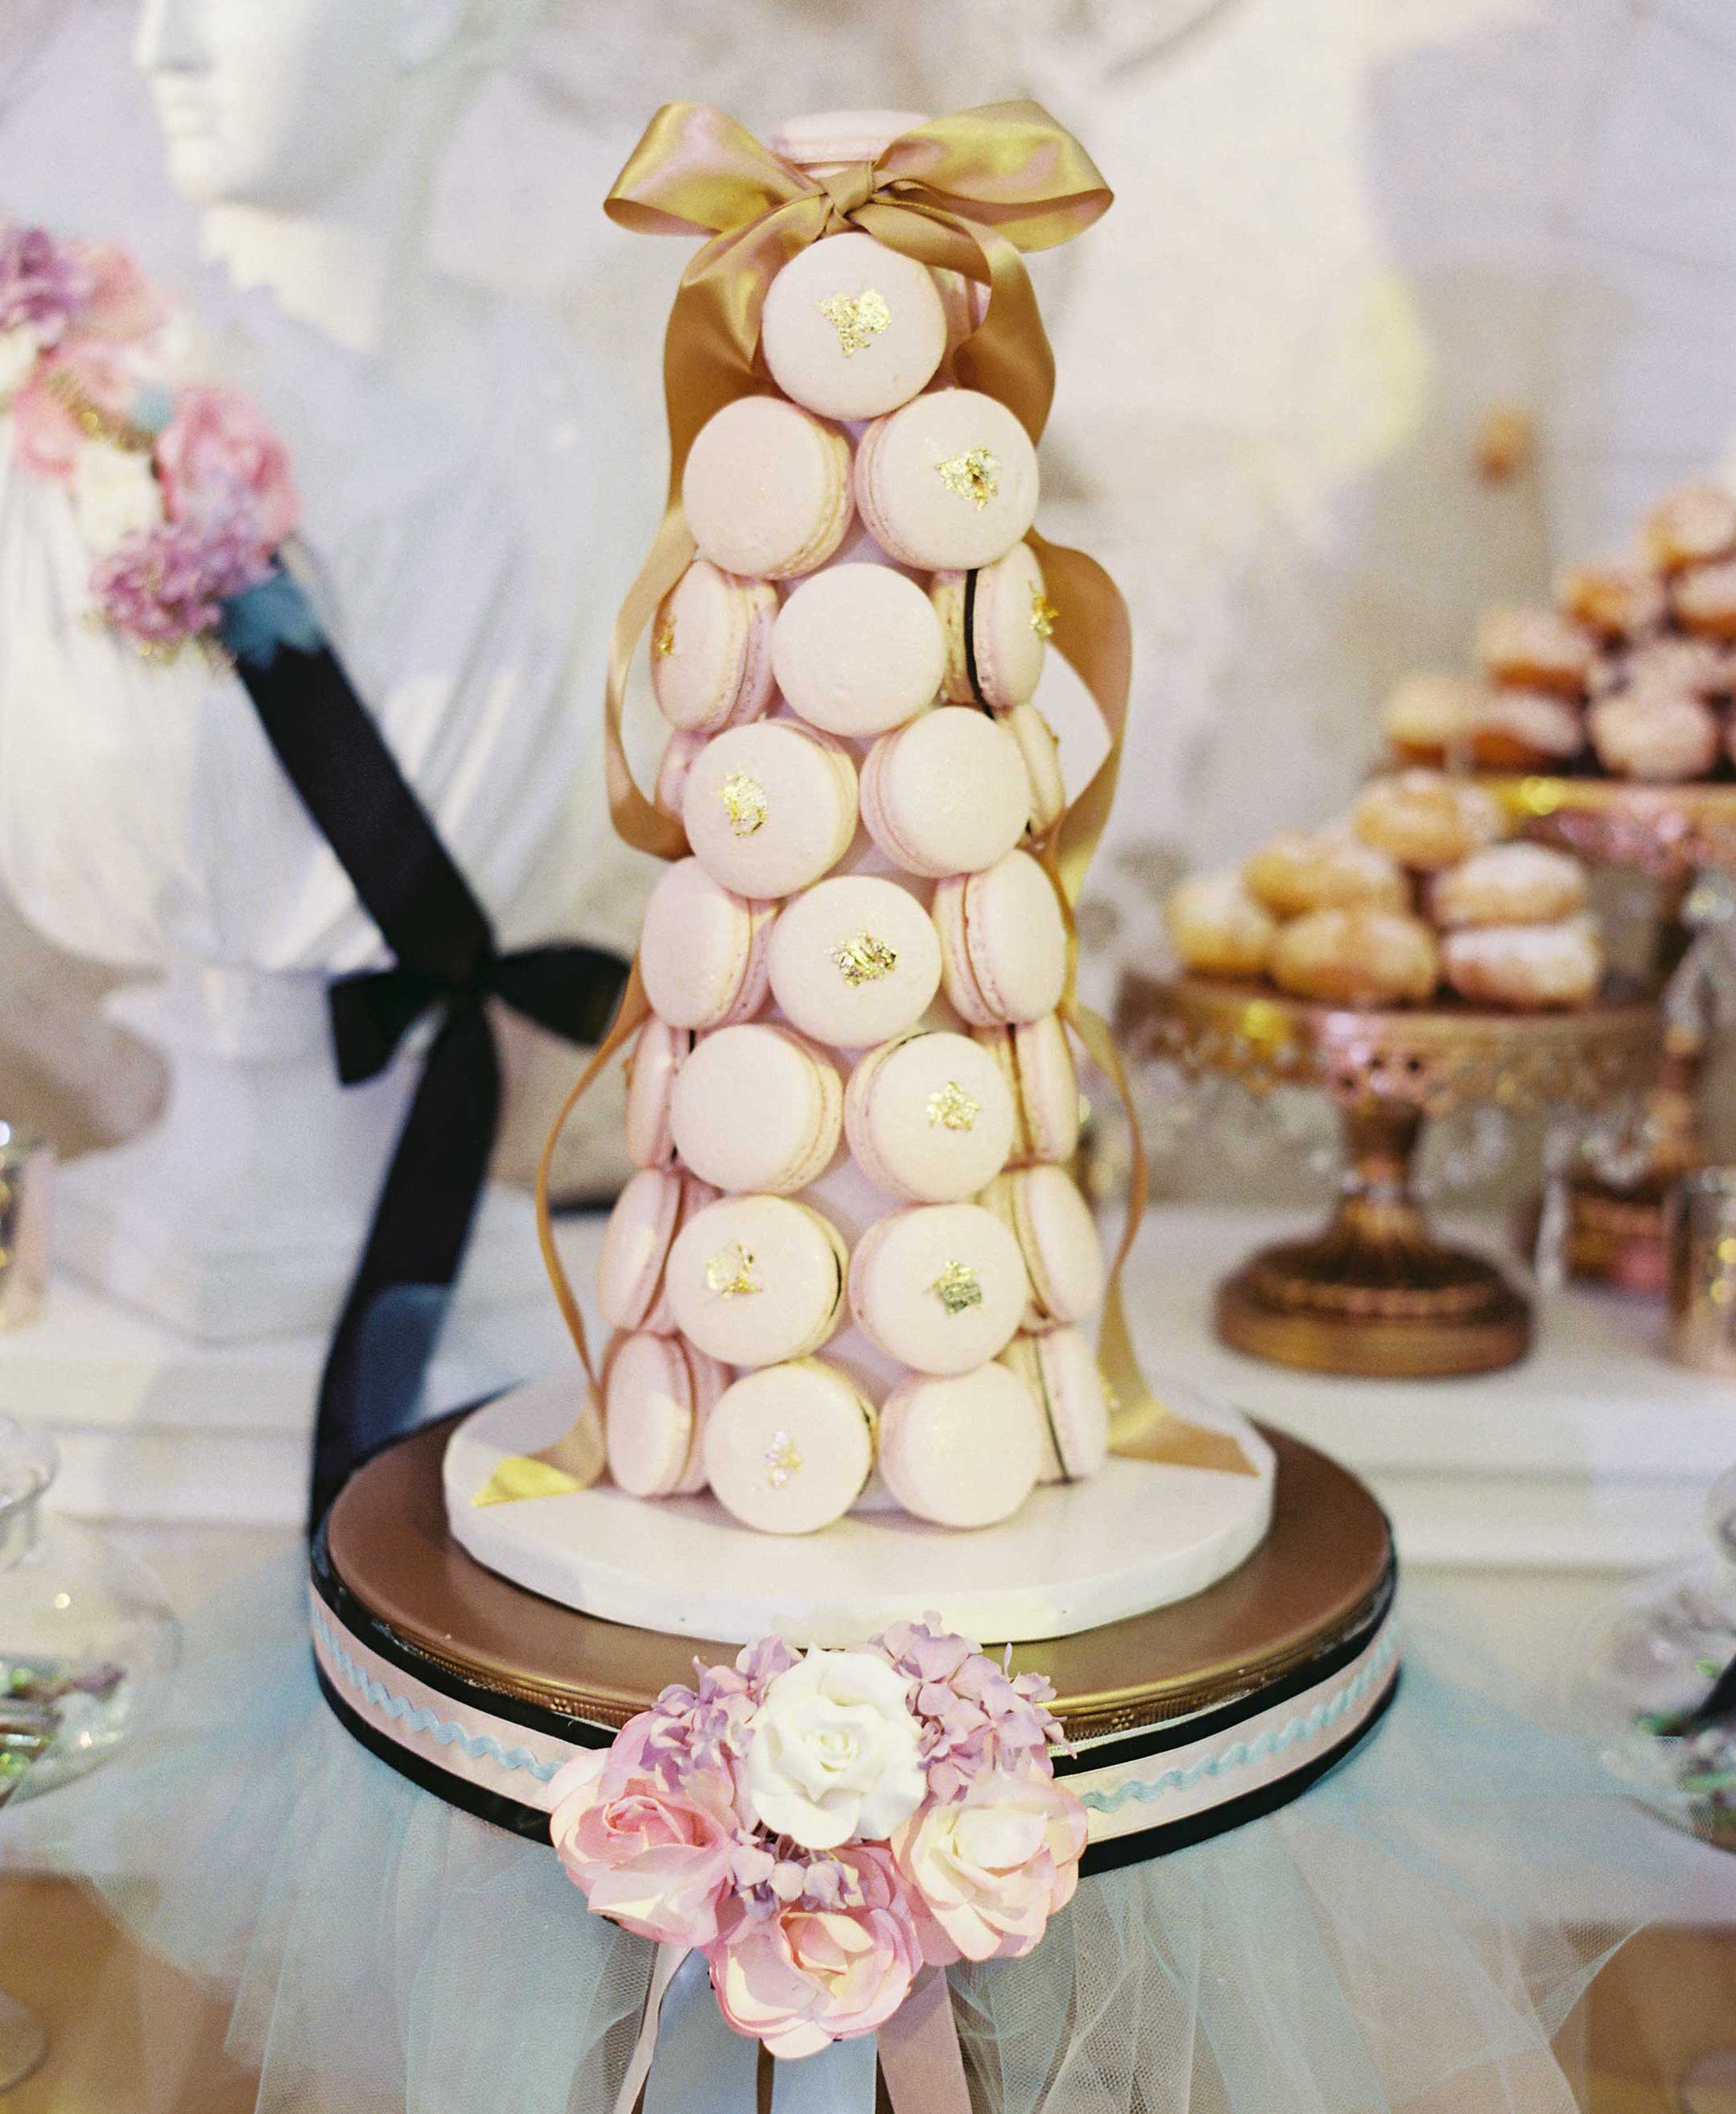 Tower of pink macaron desserts with gold flakes